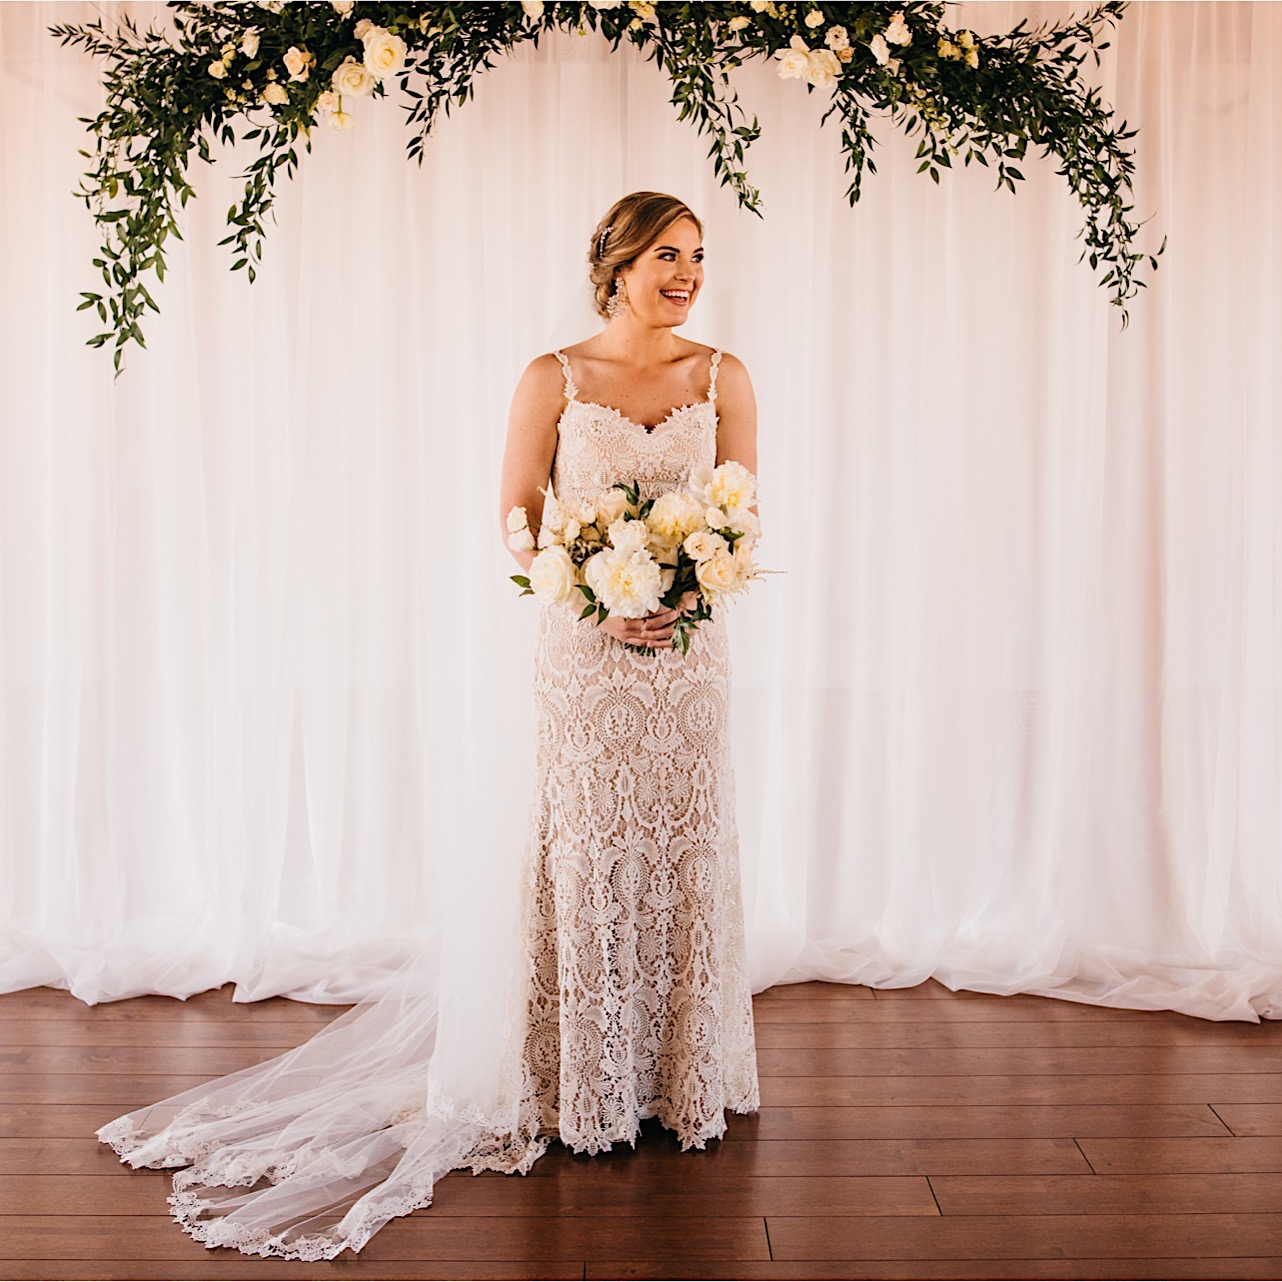 bride in lace wedding gown holding large, white Petaline bouquet beneath wedding arch made of greenery and white blooms